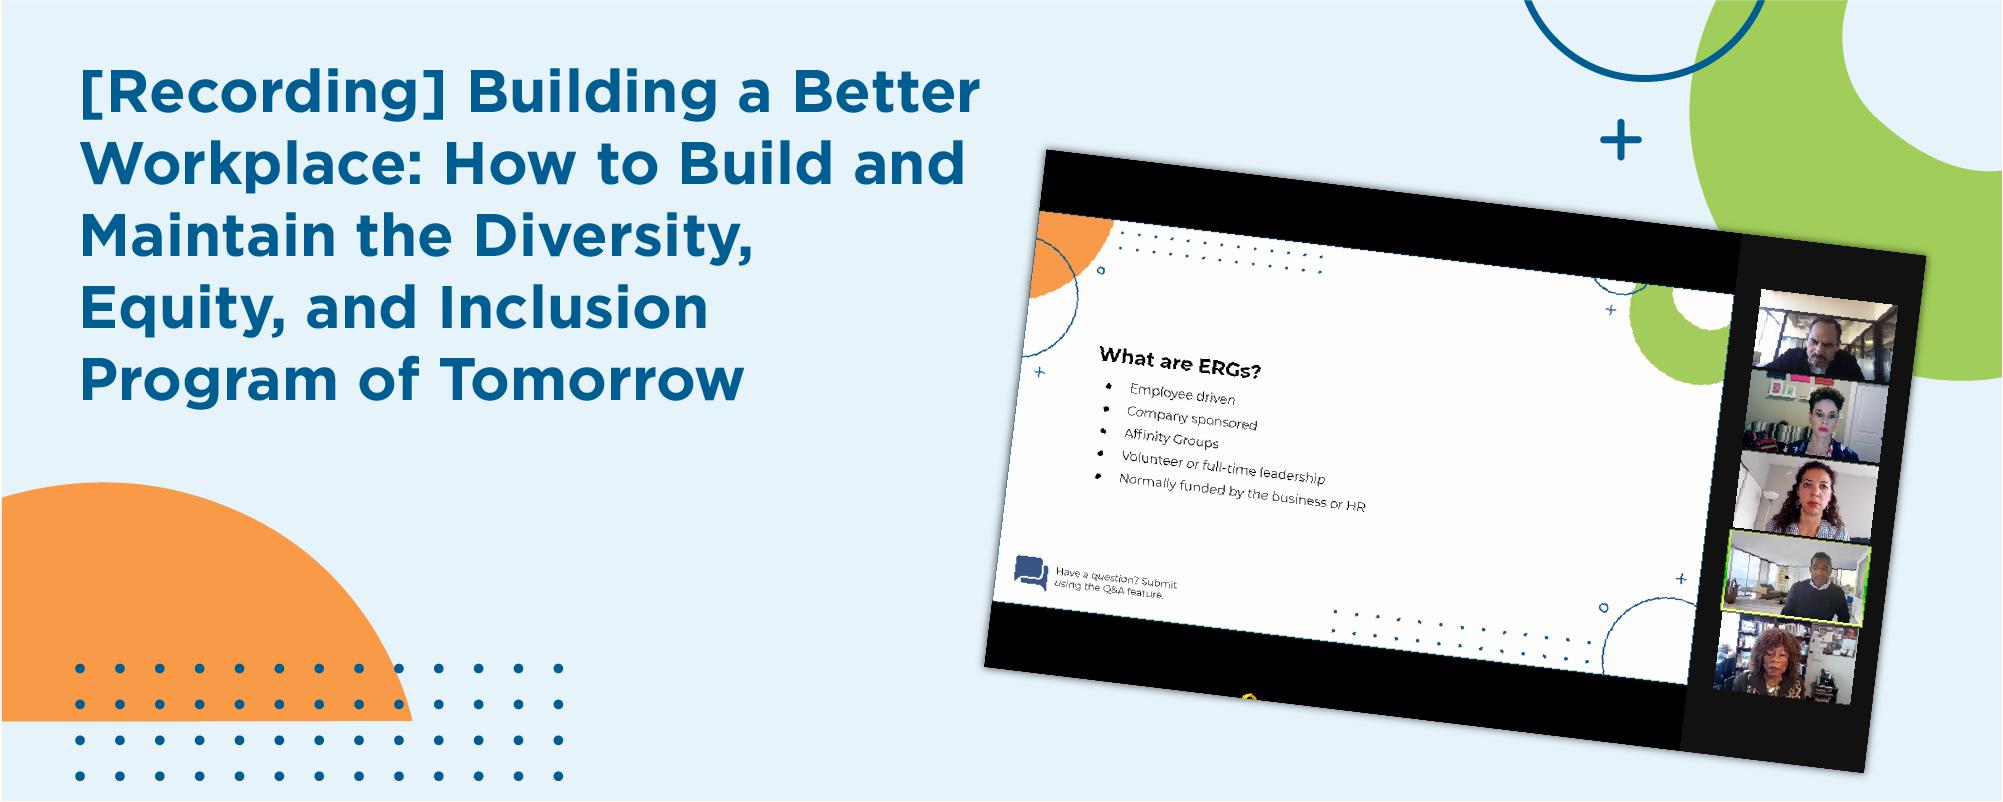 [Recording] Building a Better Workplace: How to Build and Maintain the Diversity, Equity, and Inclusion Program of Tomorrow